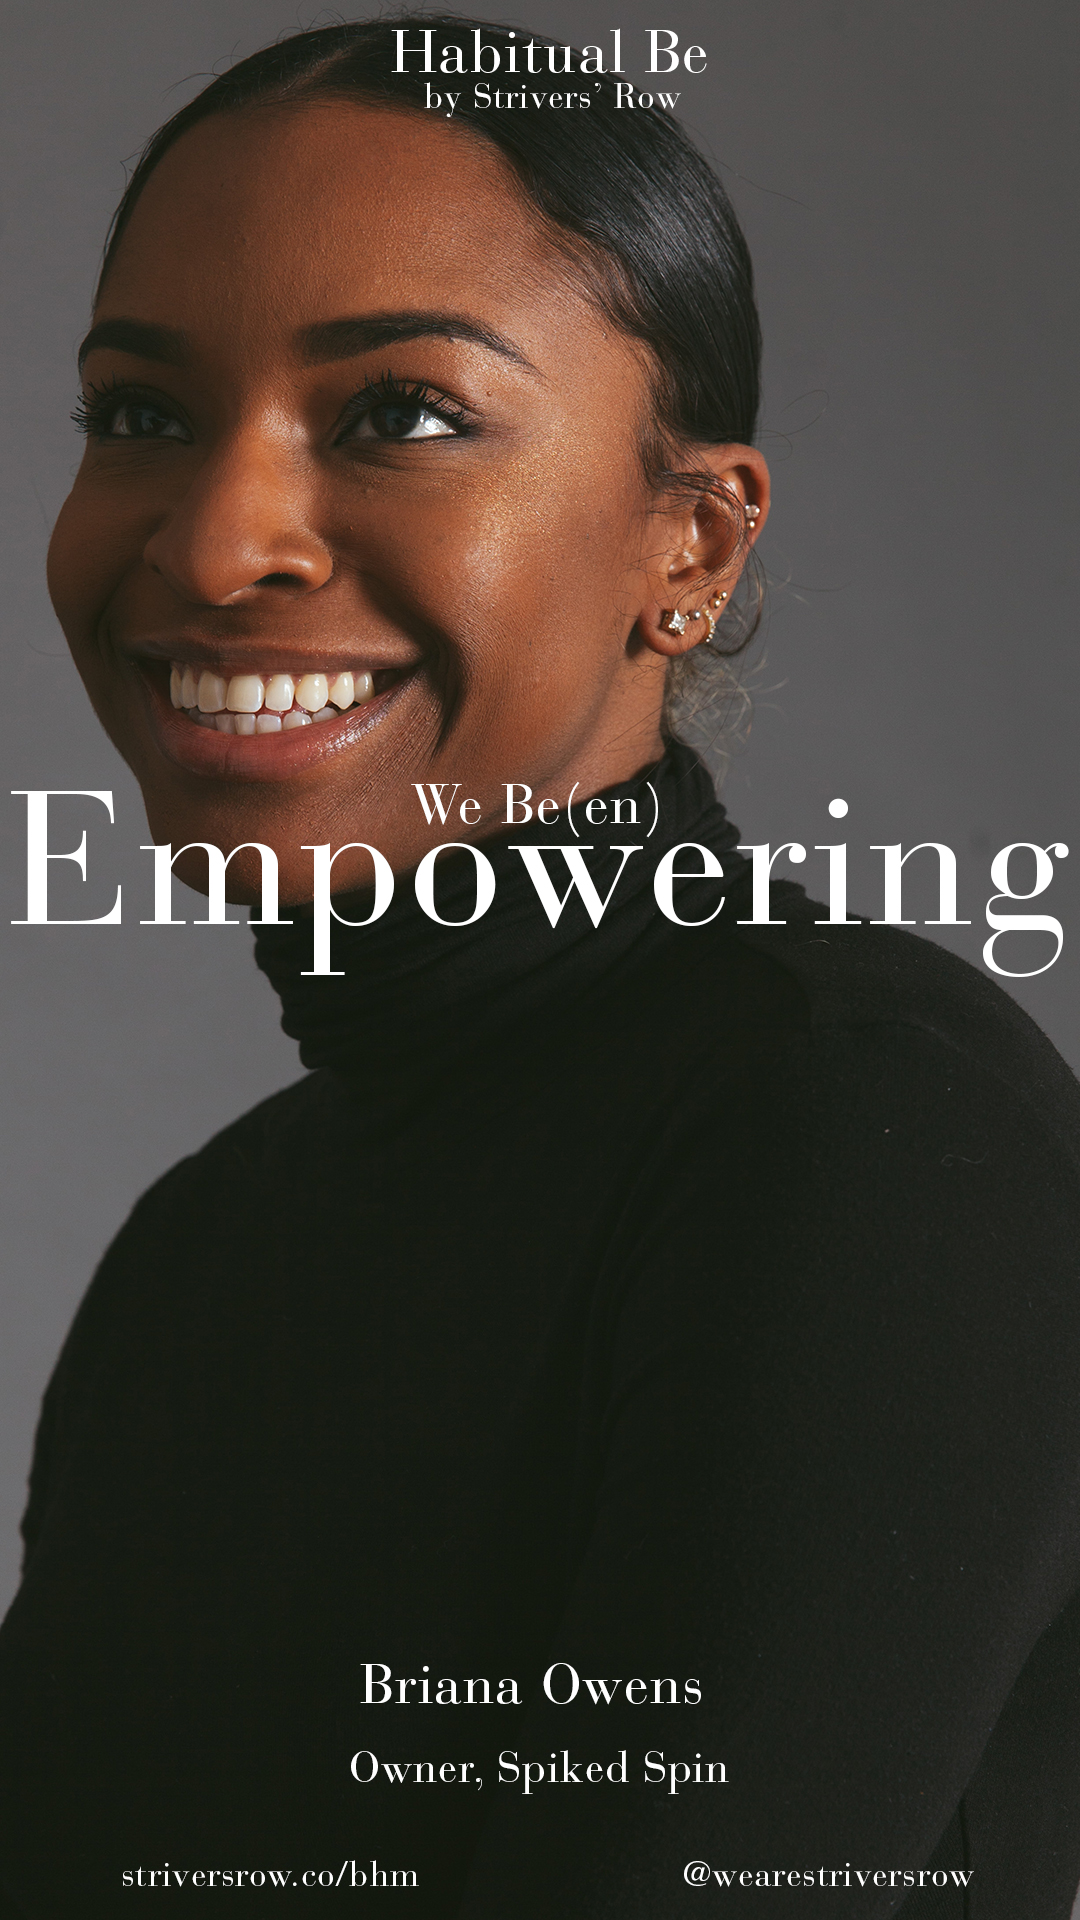 """""""My hustle is 100% from my mother. Having me at 20 years old, I witnessed all her adversity. I watched her journey through her career. She taught me about hard work and the importance of having strong ethics. She's all about no excuses and having full belief in your capability. She's always telling me, """"Anything you want to do, you need to do. And if you haven't done it yet, it's because you don't want to."""" My grind is all about getting people to realize their greatest potential and live that out daily. I want to not only remind but challenge people to find their 100%."""""""